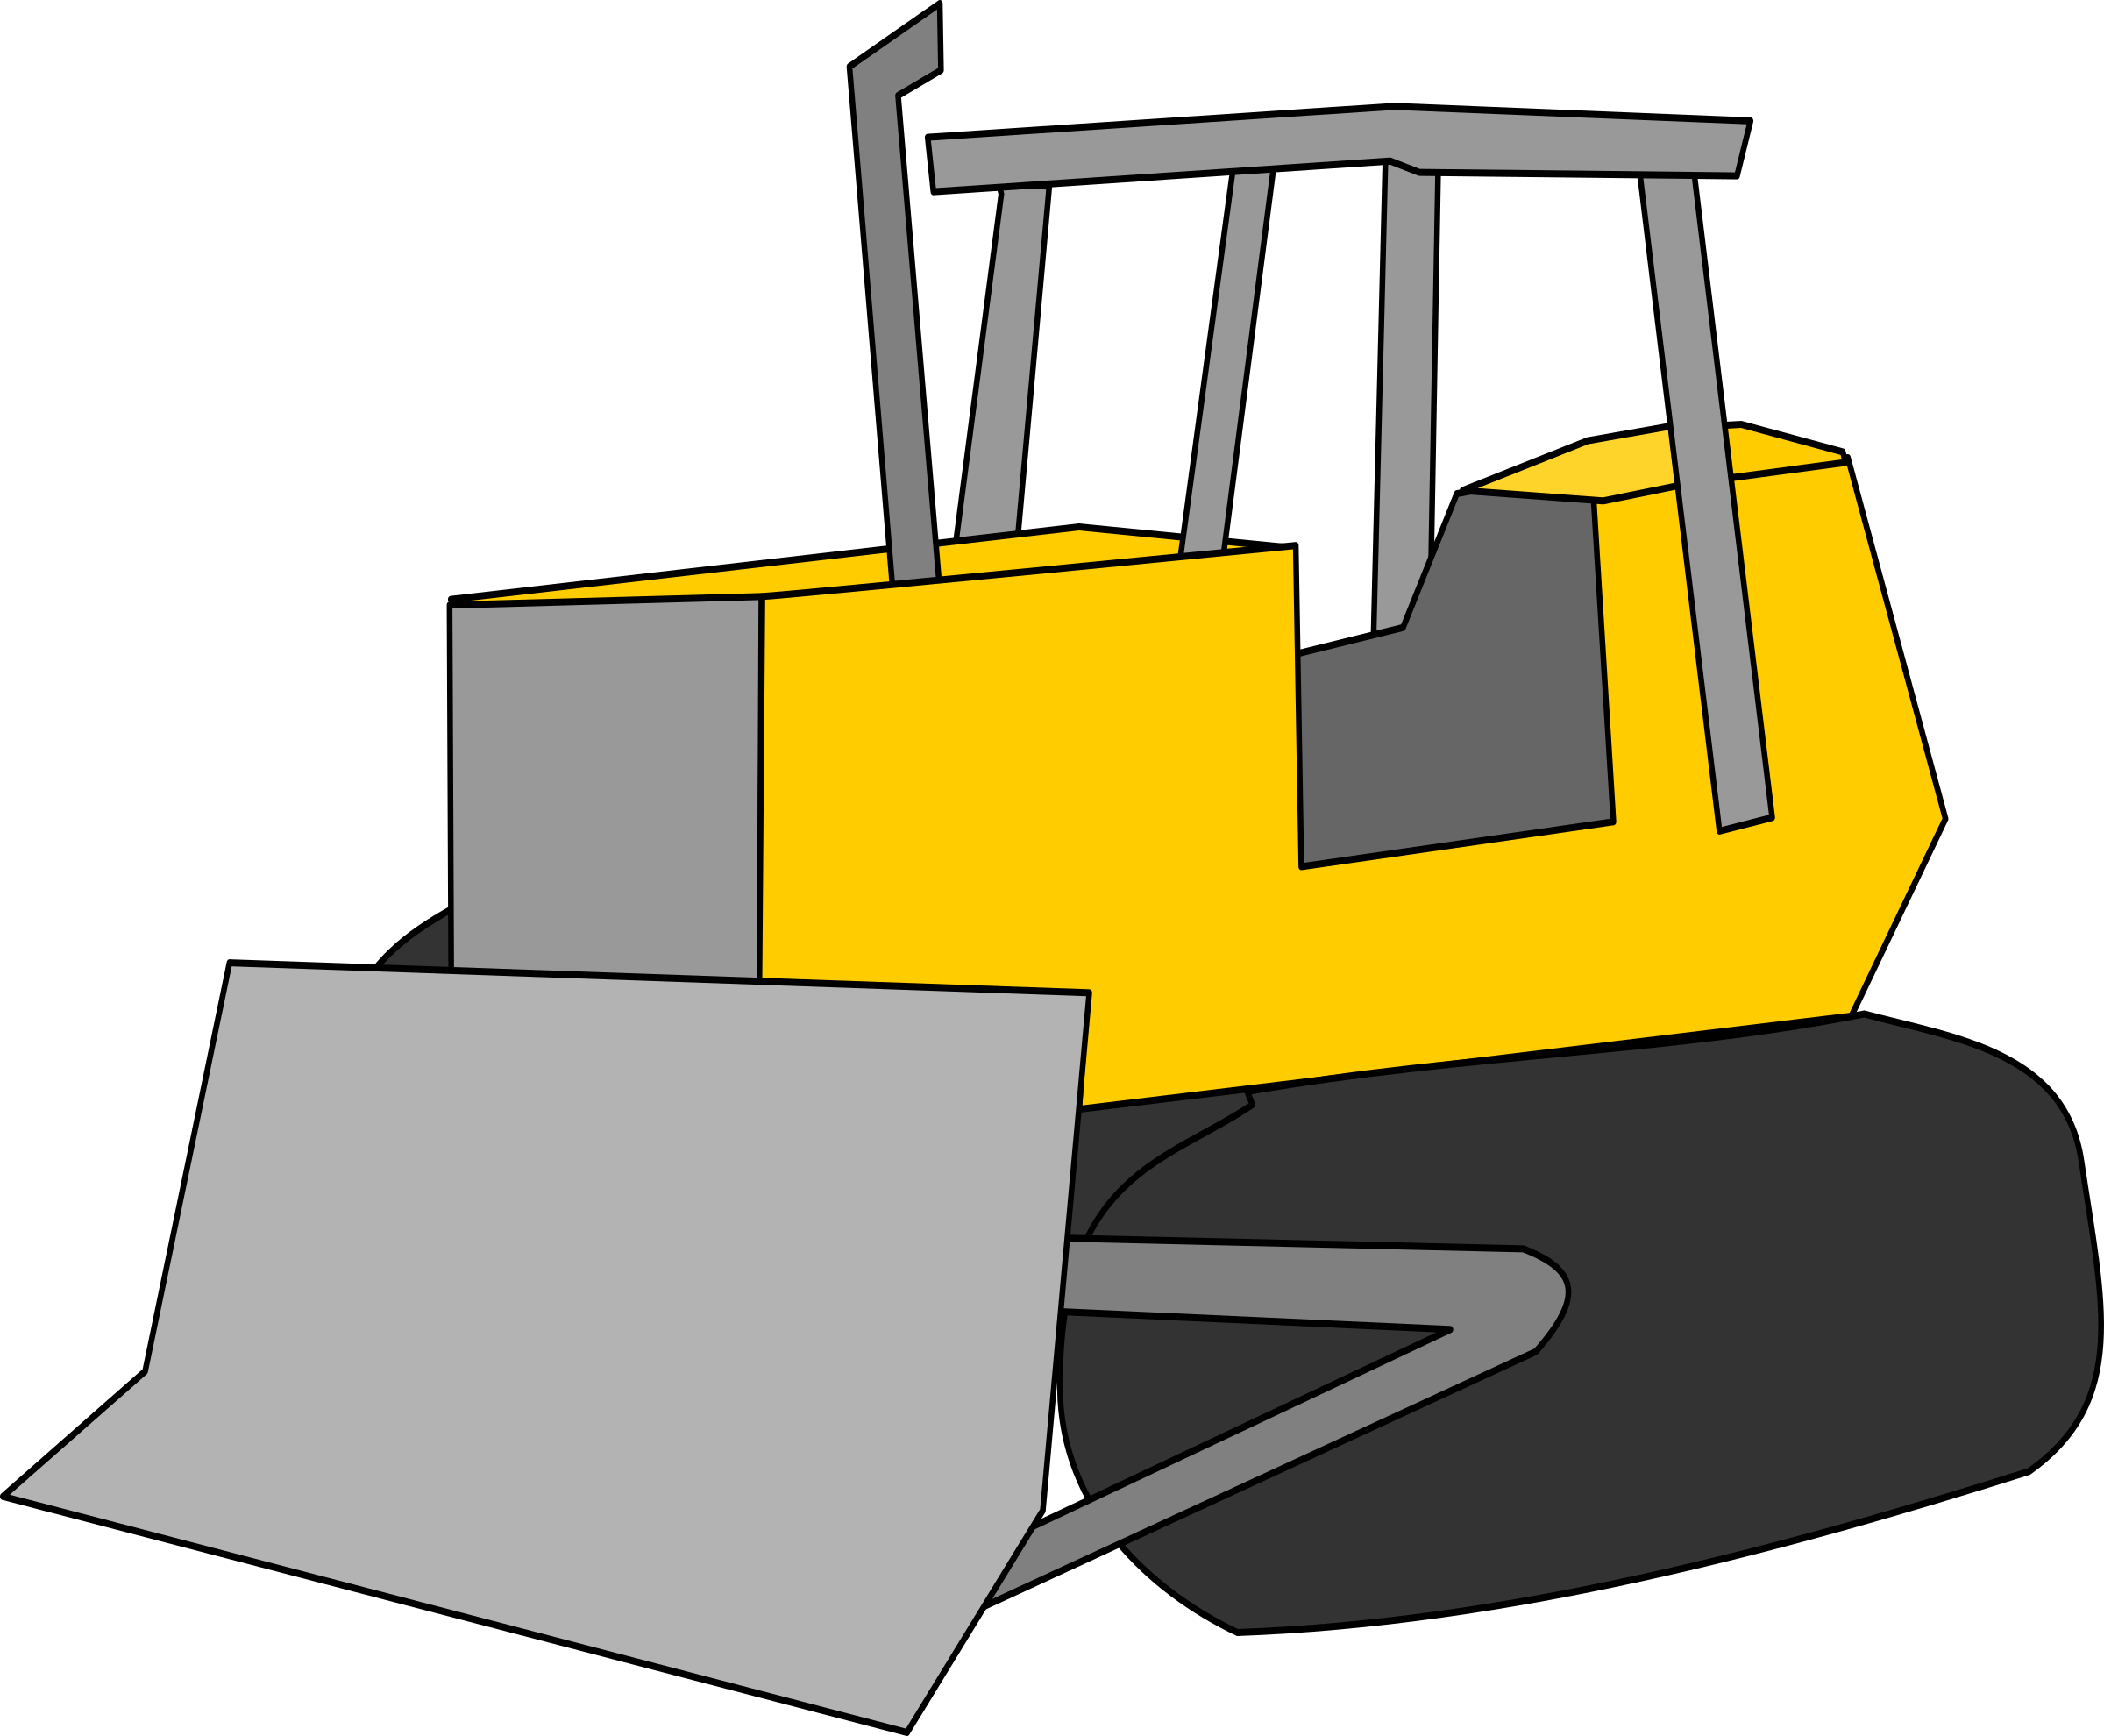 jpg transparent download Just big image png. Bulldozer clipart.